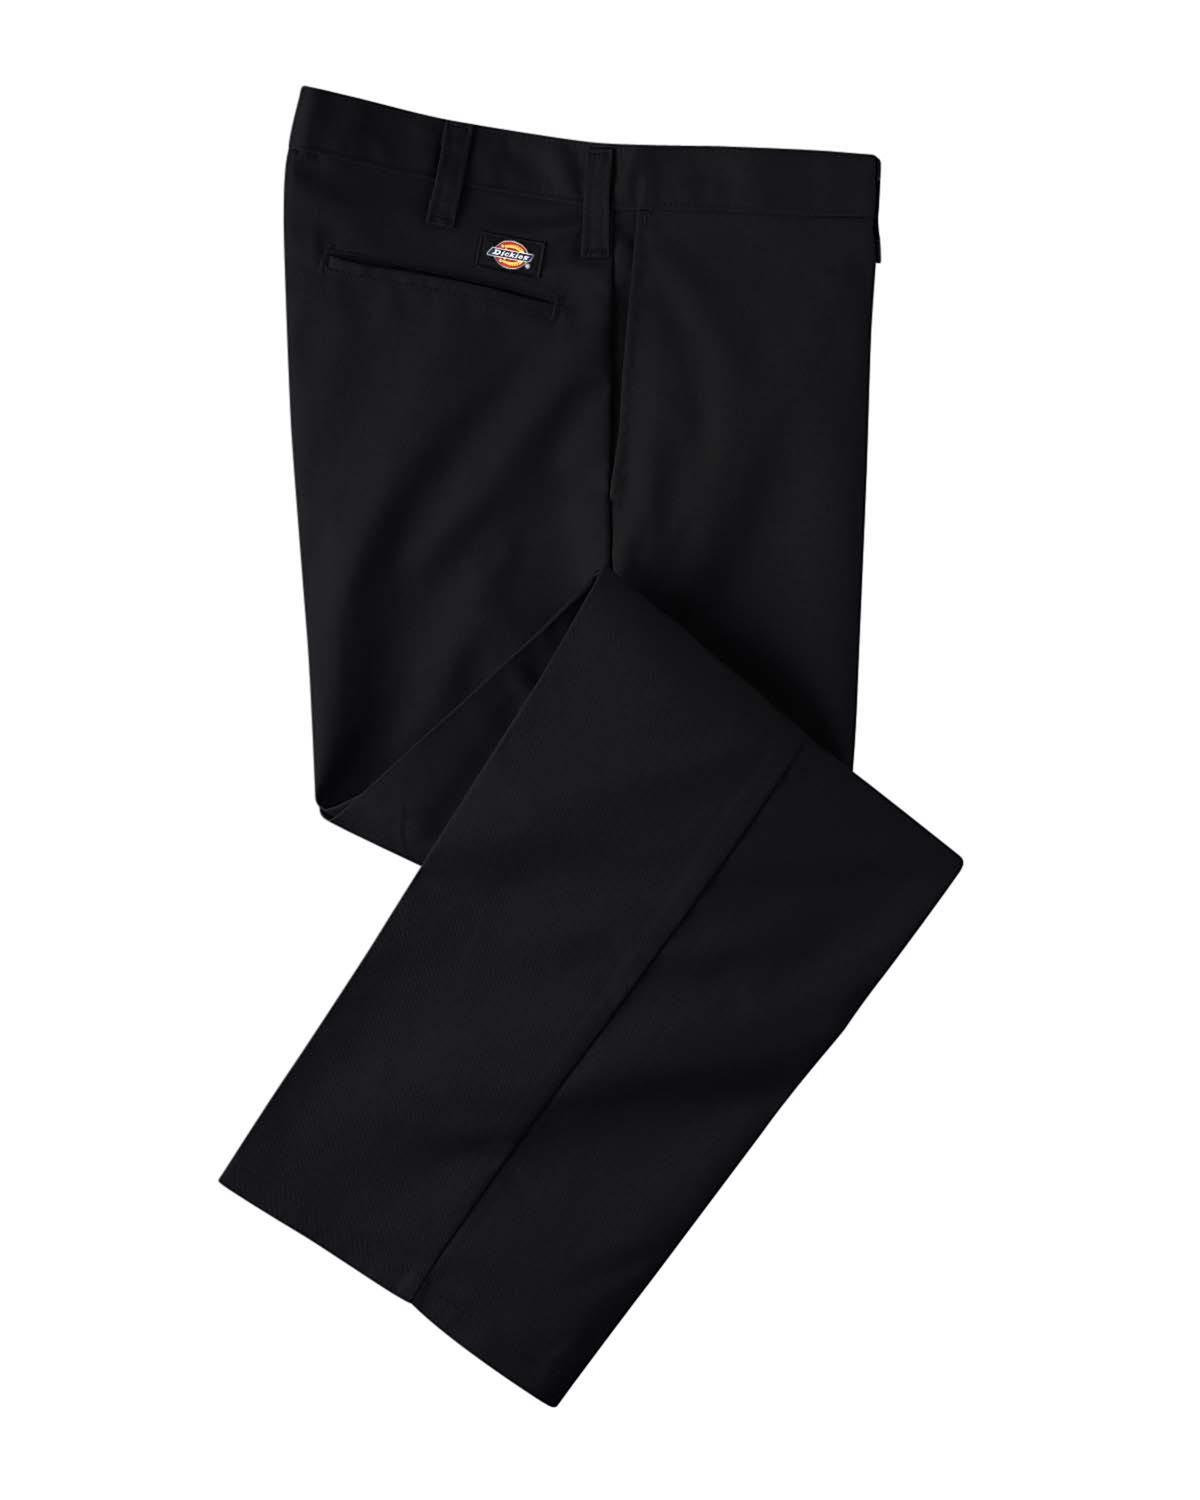 Men's 7.75 oz. Industrial Flat Front Pant